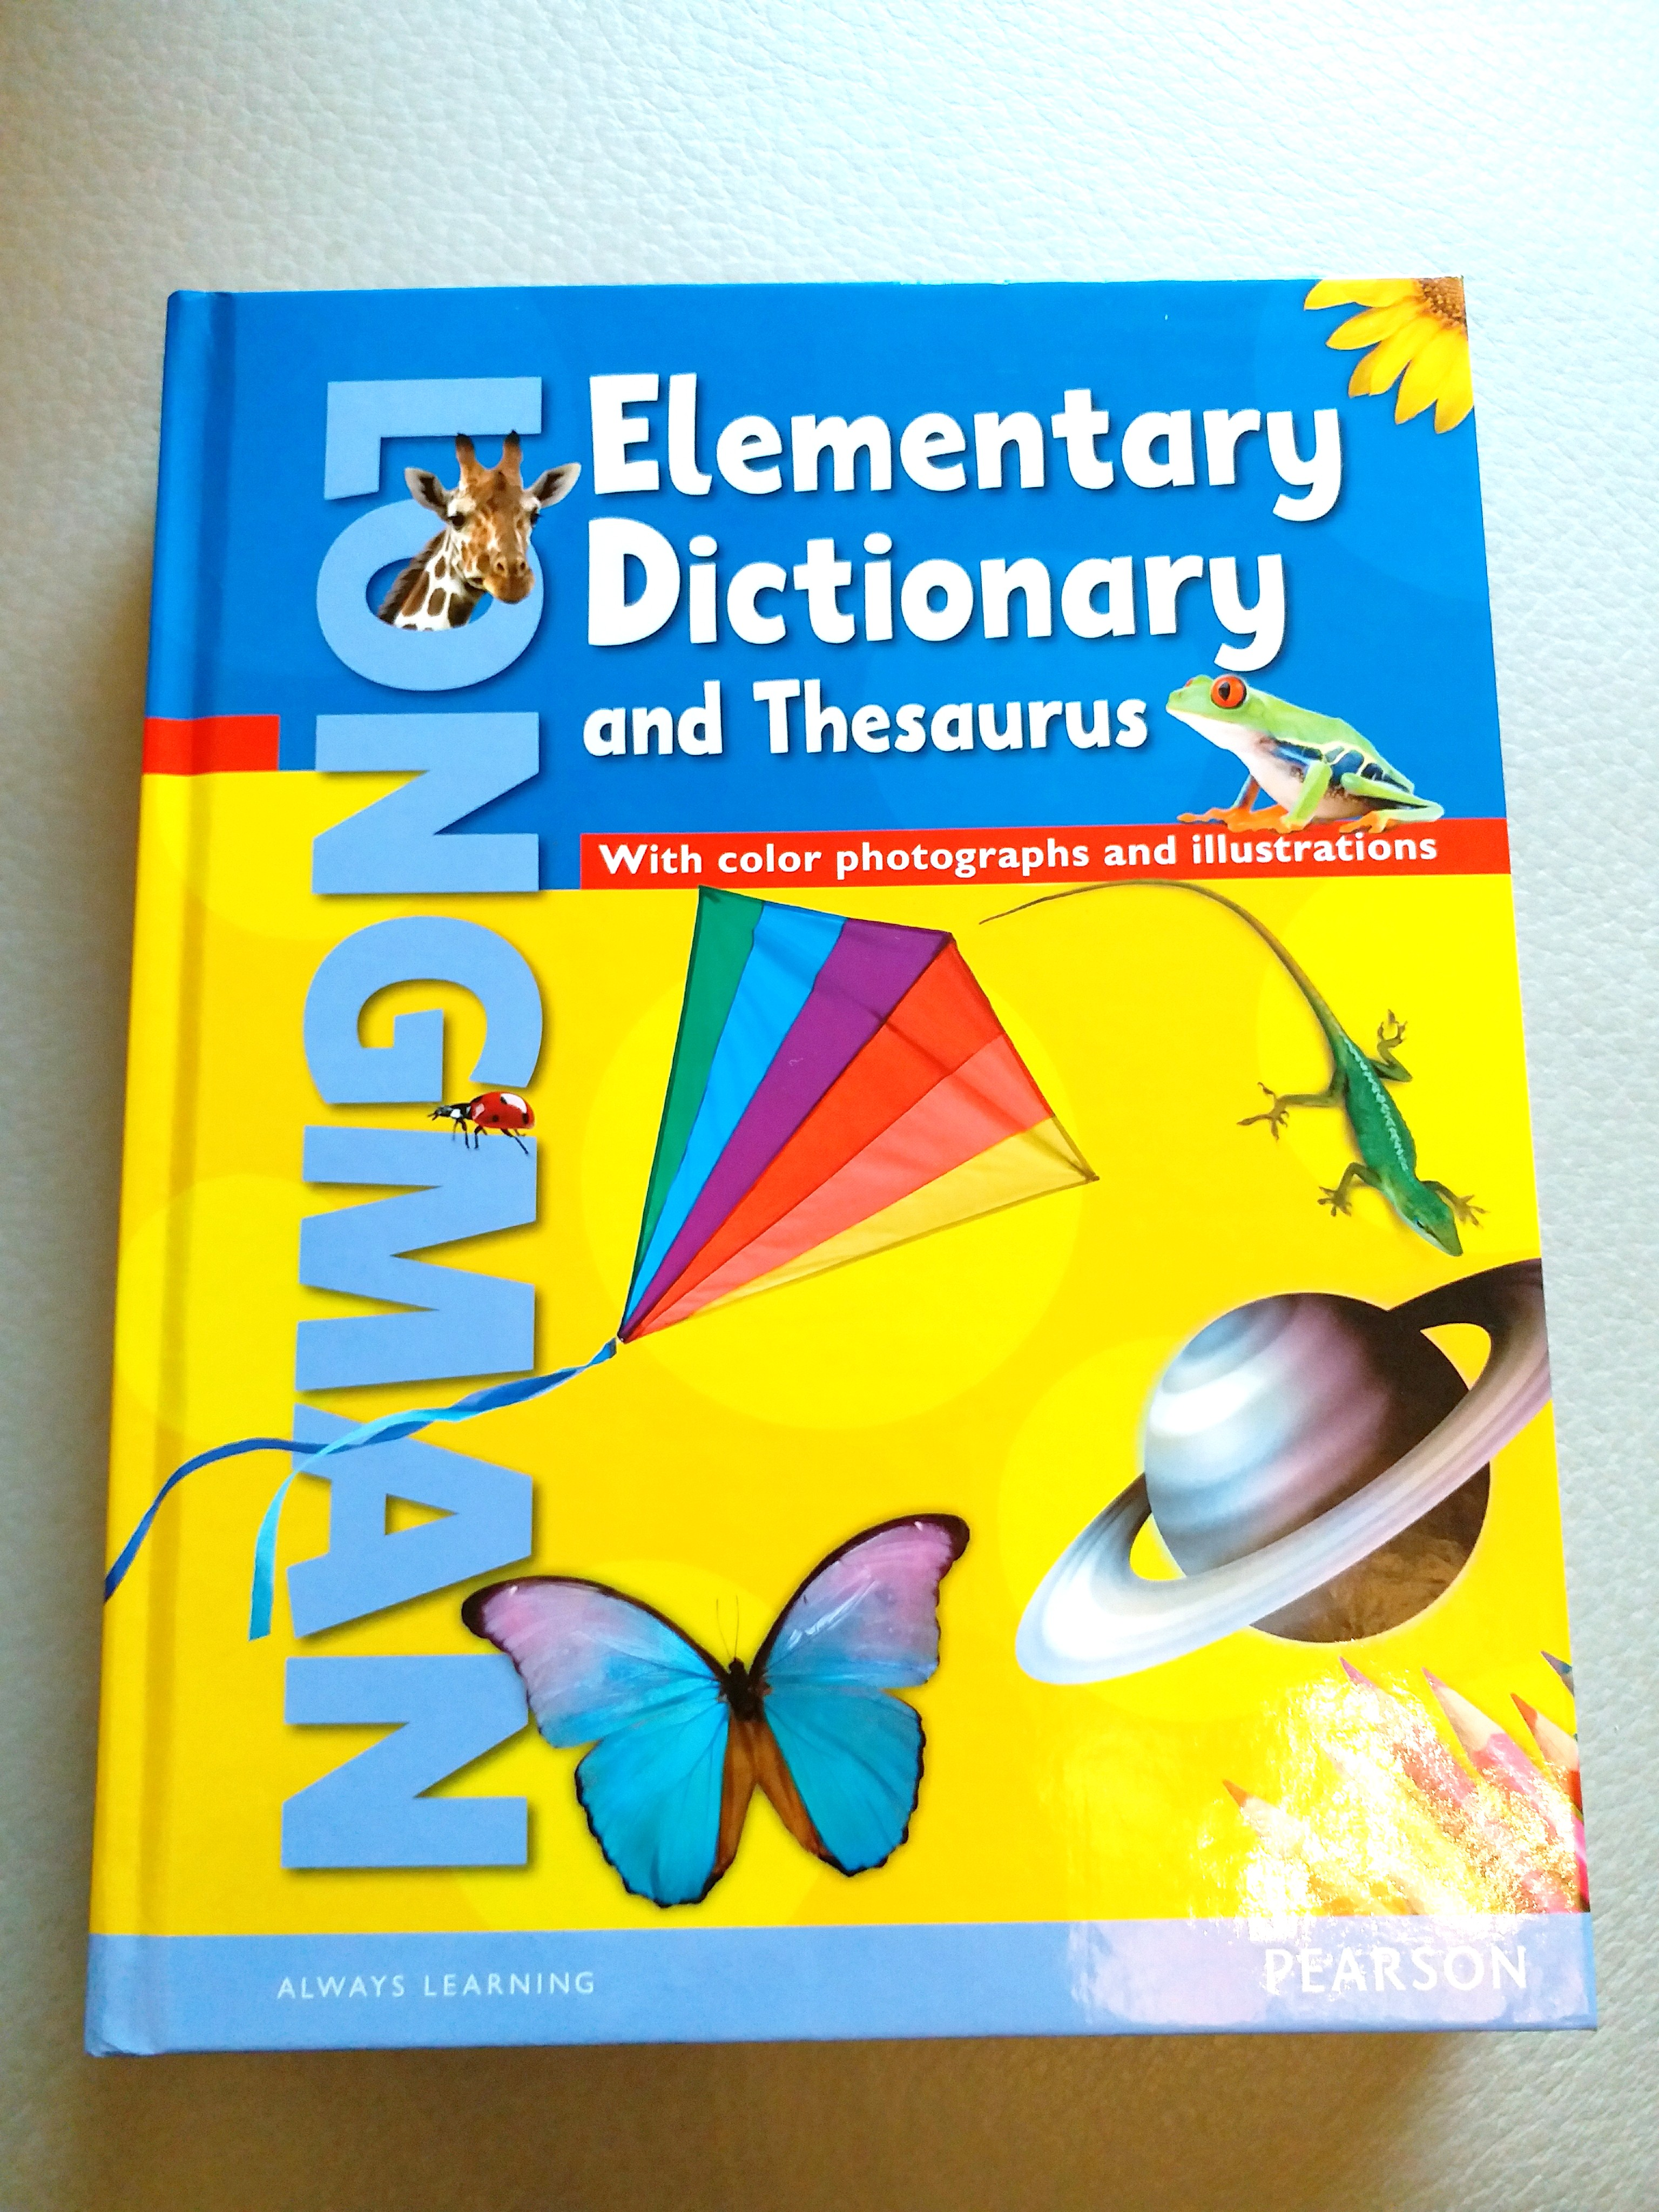 Pearson Elementary Dictionary And Thesaurus Amp